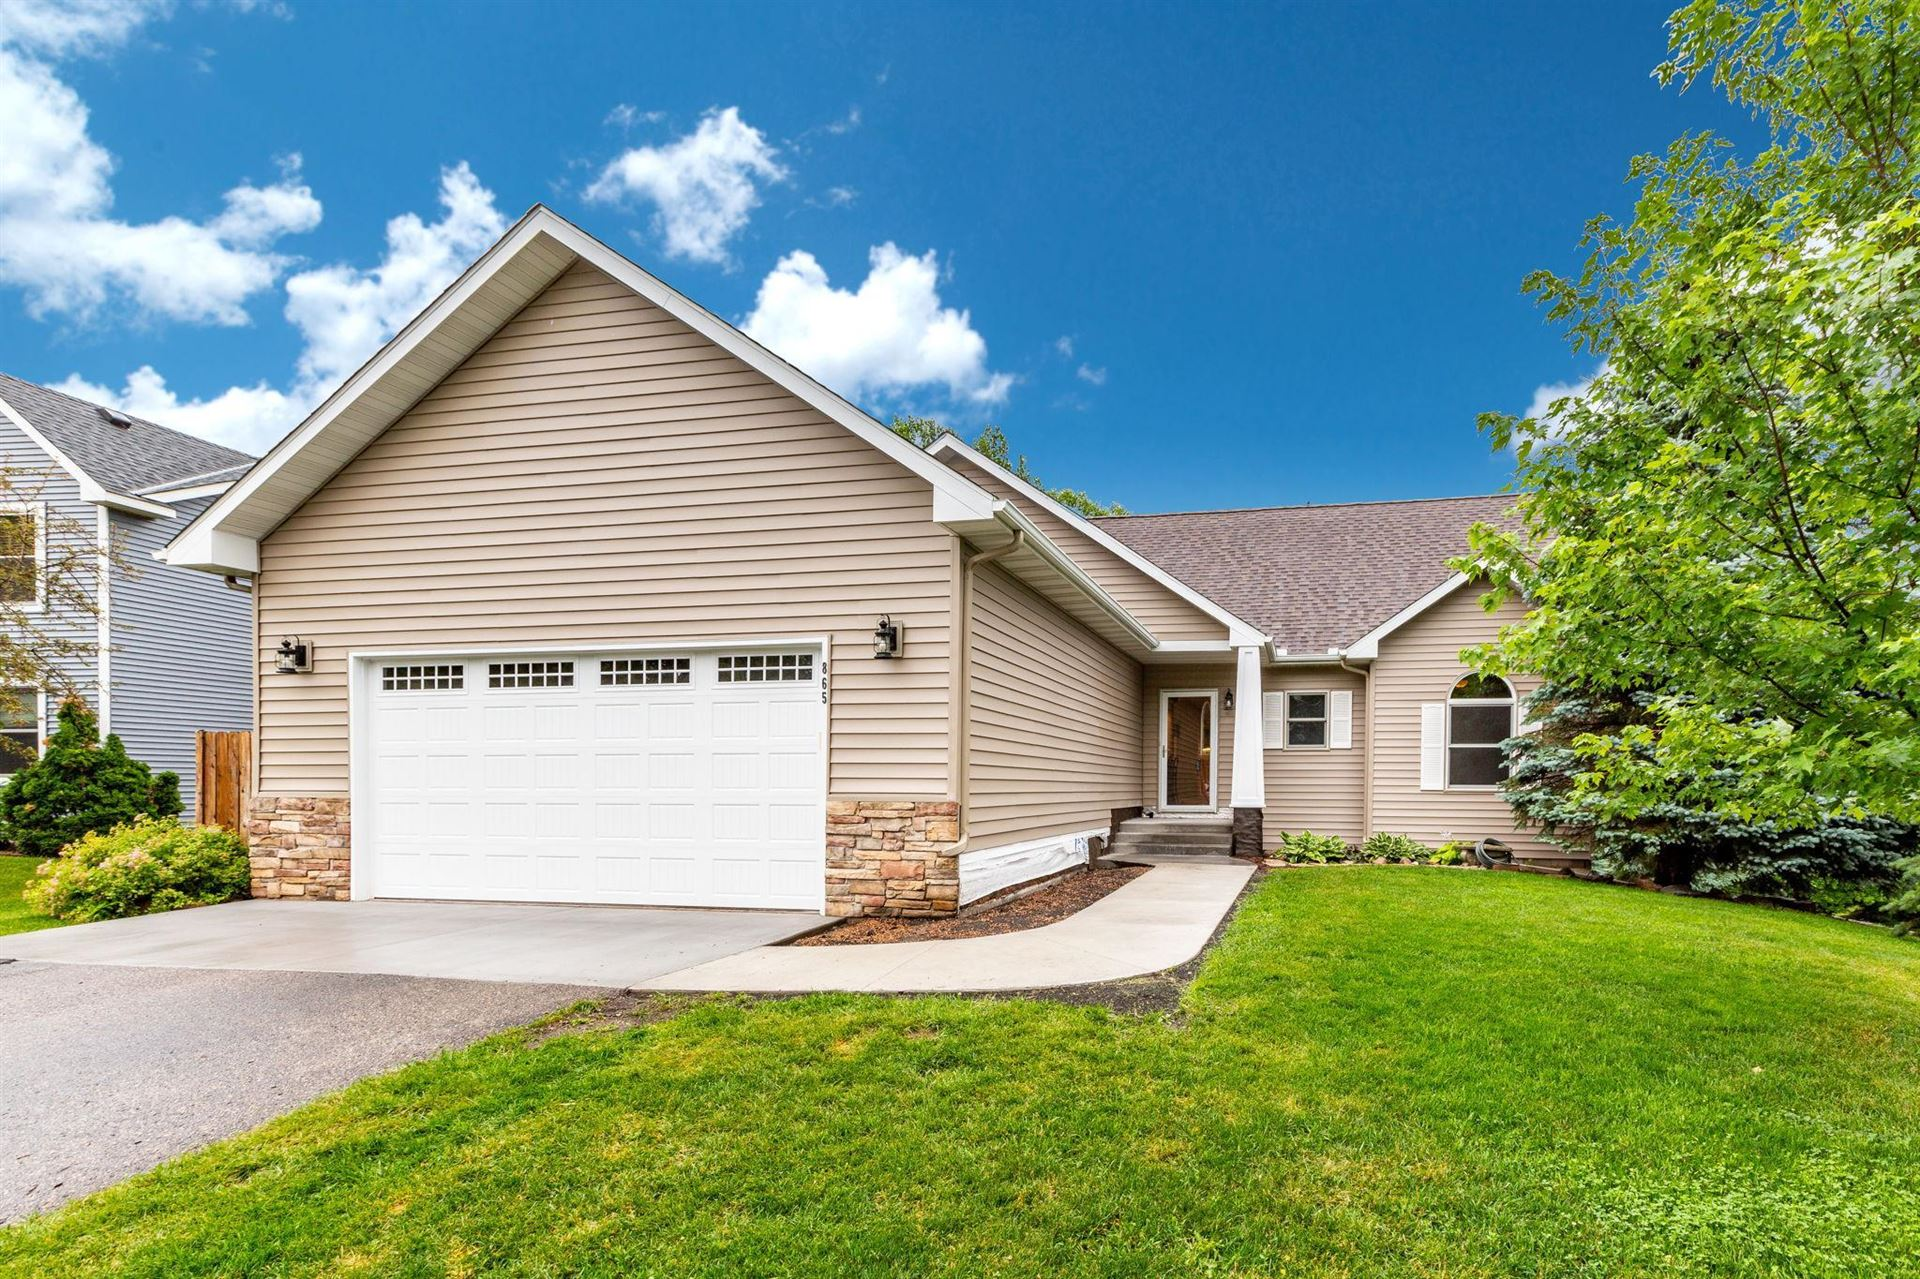 Photo for 865 Quail Court, Watertown, MN 55388 (MLS # 5577918)